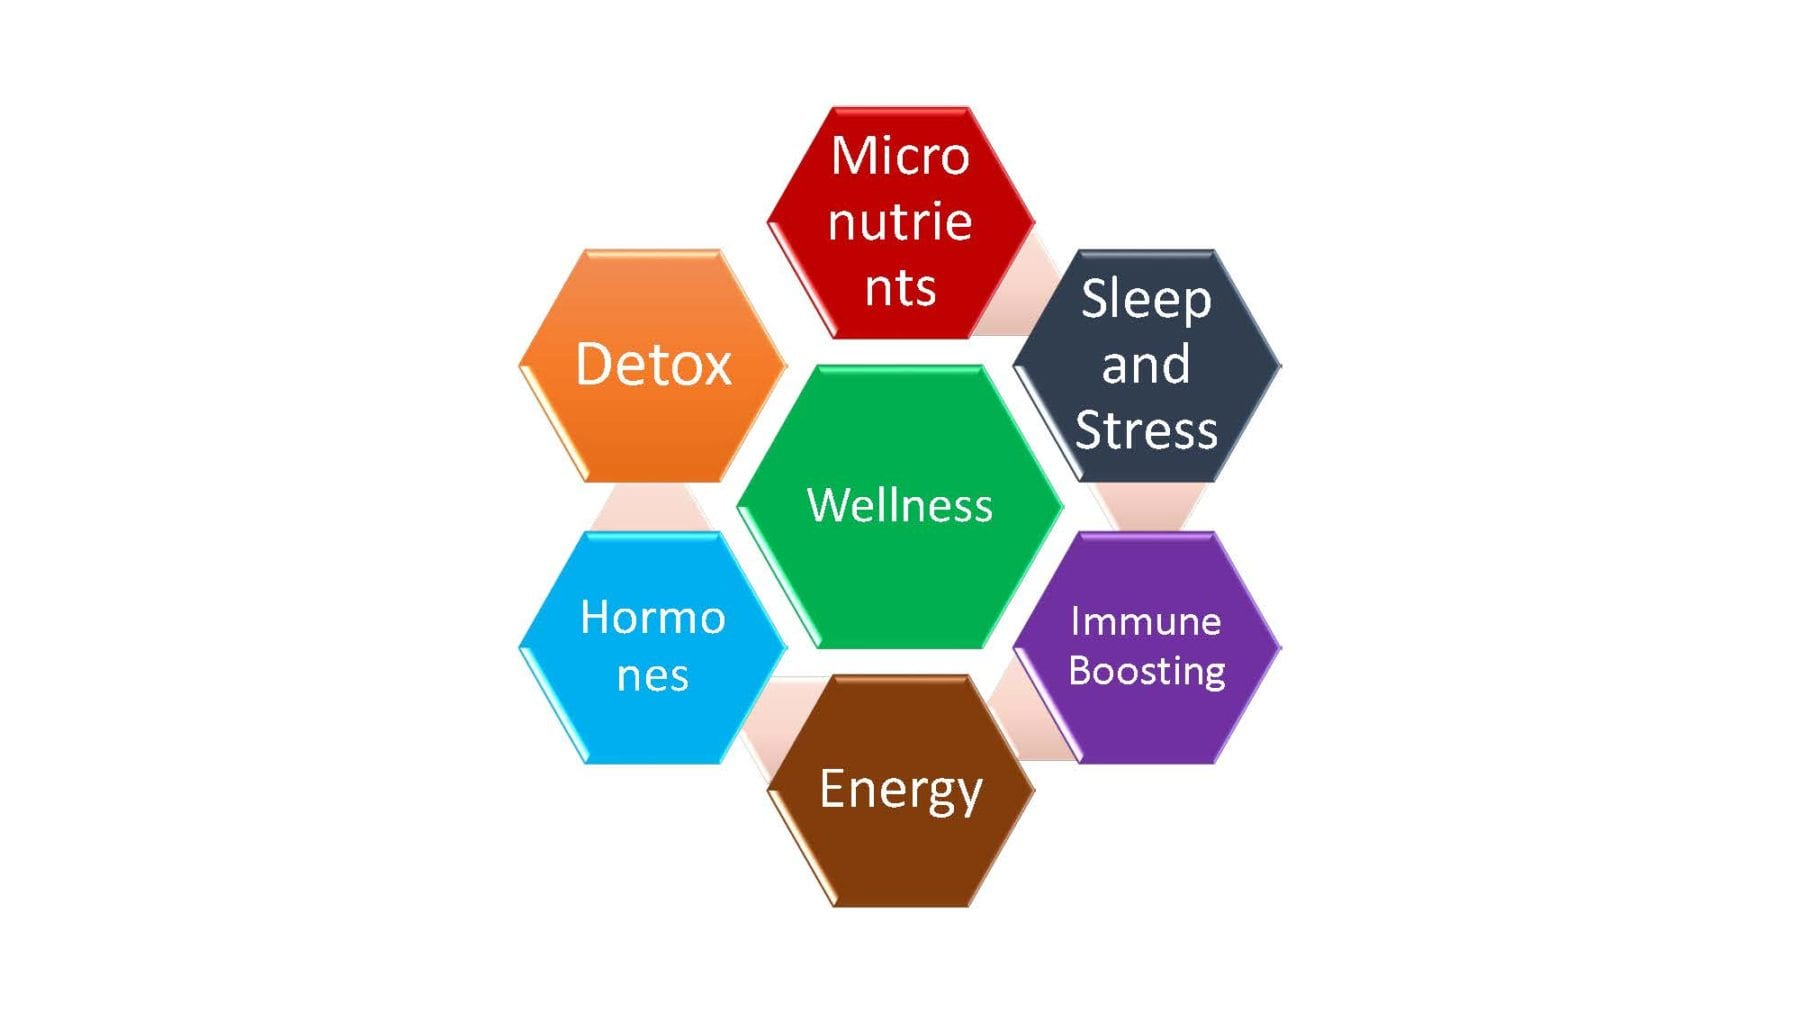 6 Domains of Wellness